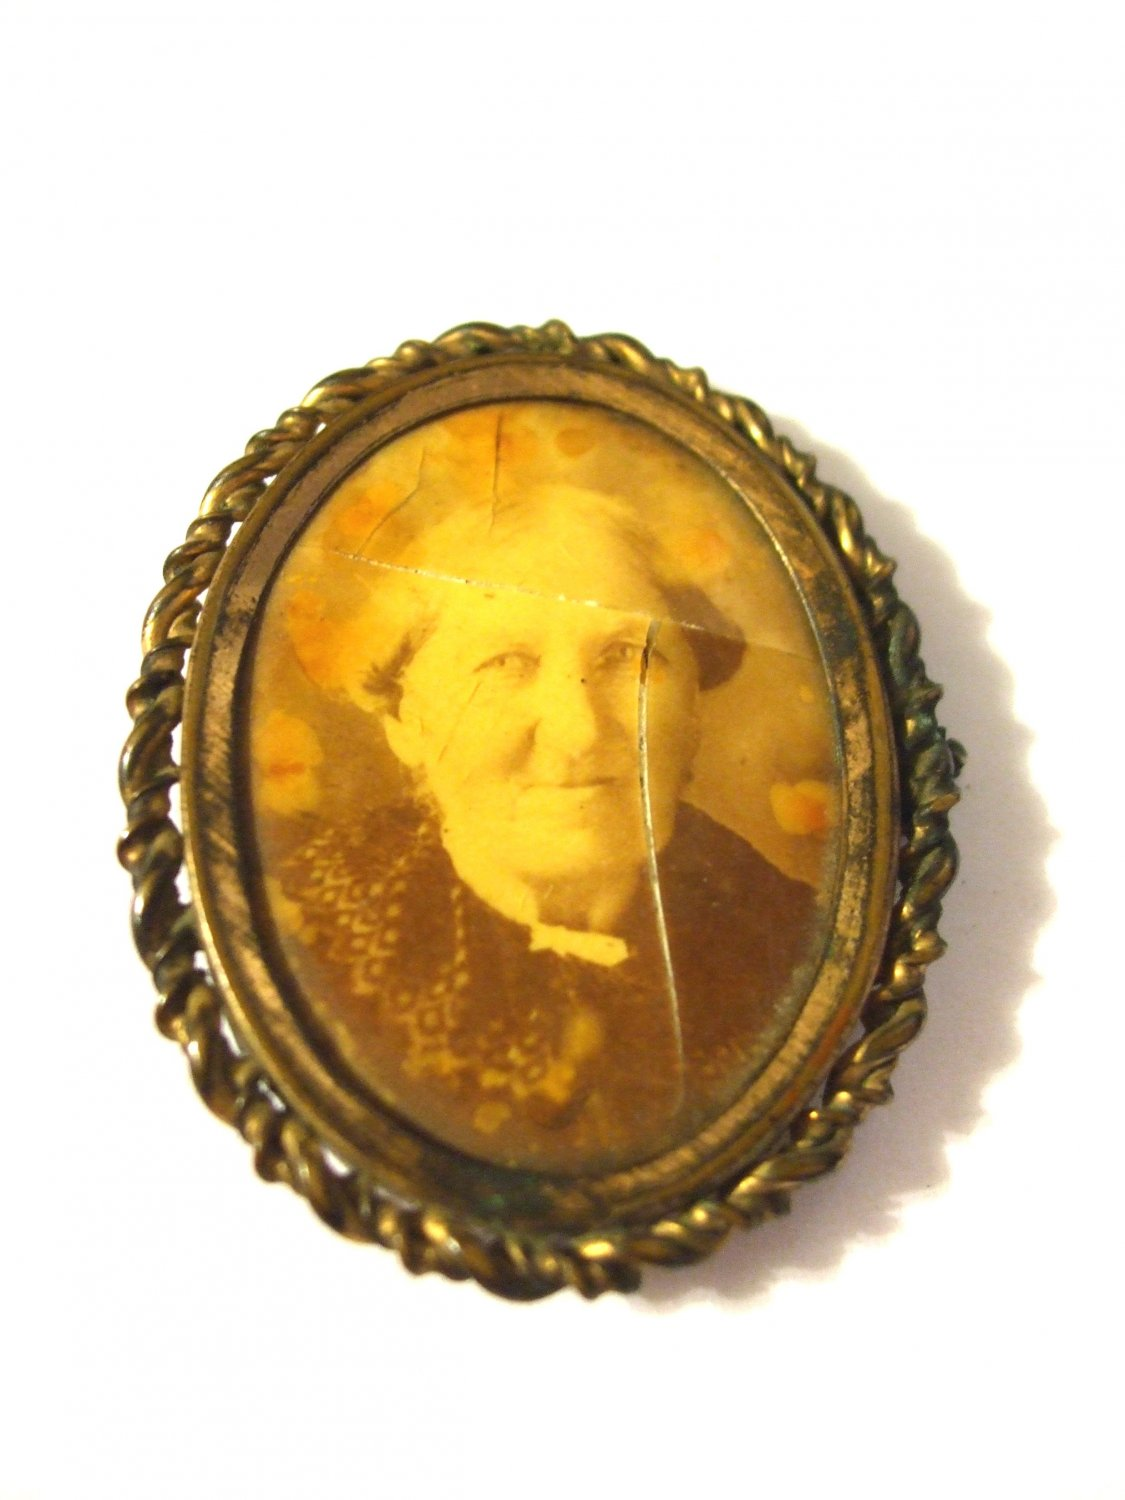 Antique Mourning Pendant with Picture of Elderly Woman Date on back May 31, 98